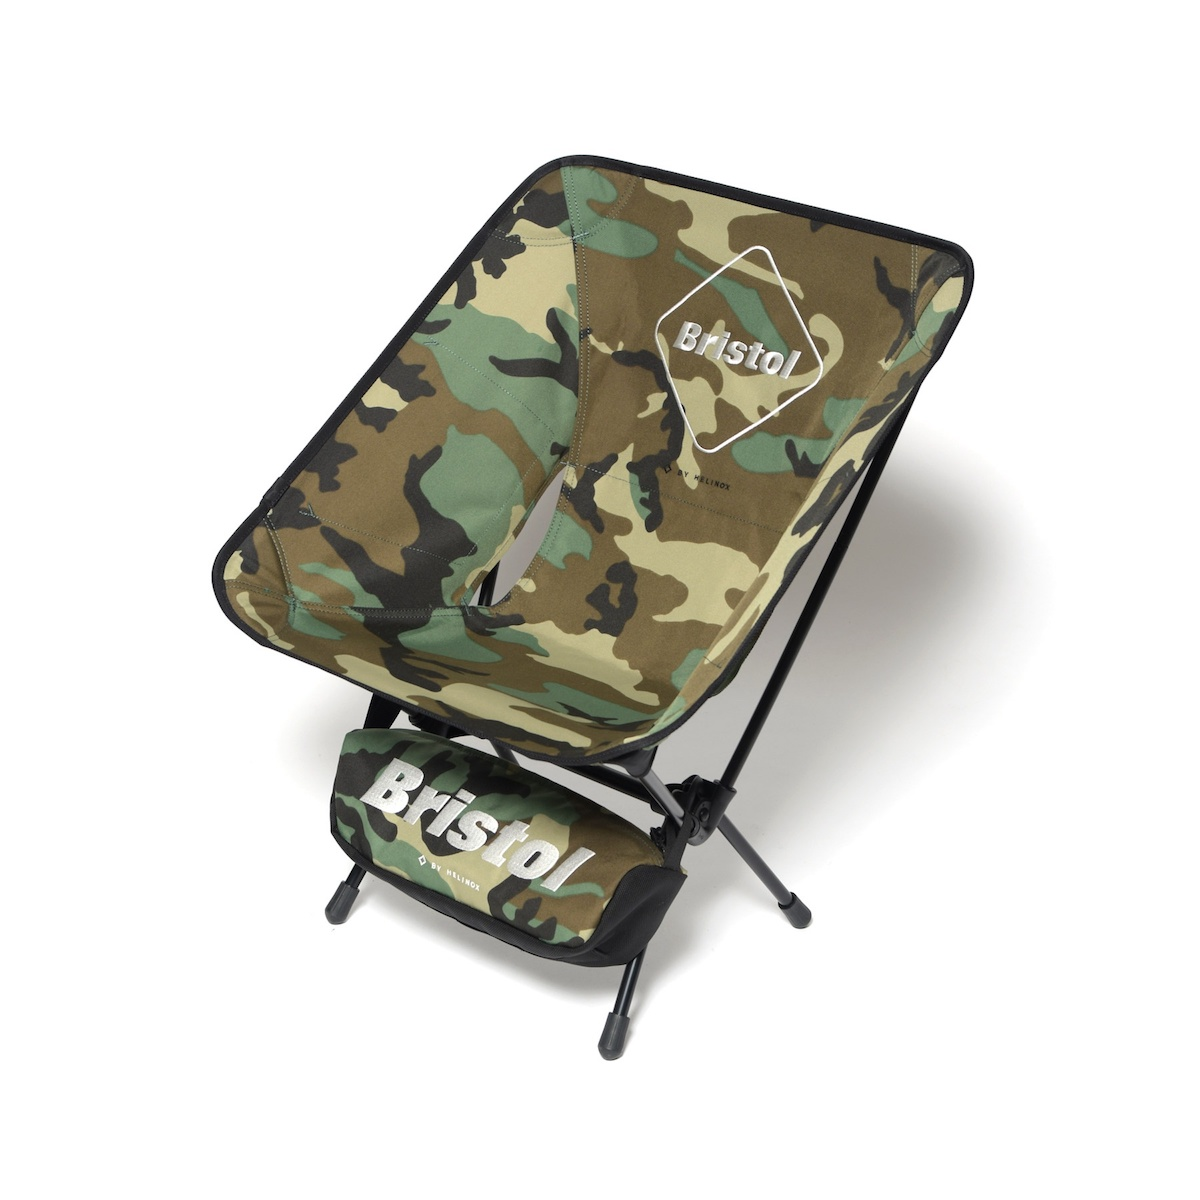 F.C.Real Bristol / HELINOX EMBLEM FOLDING CHAIR -Woodland